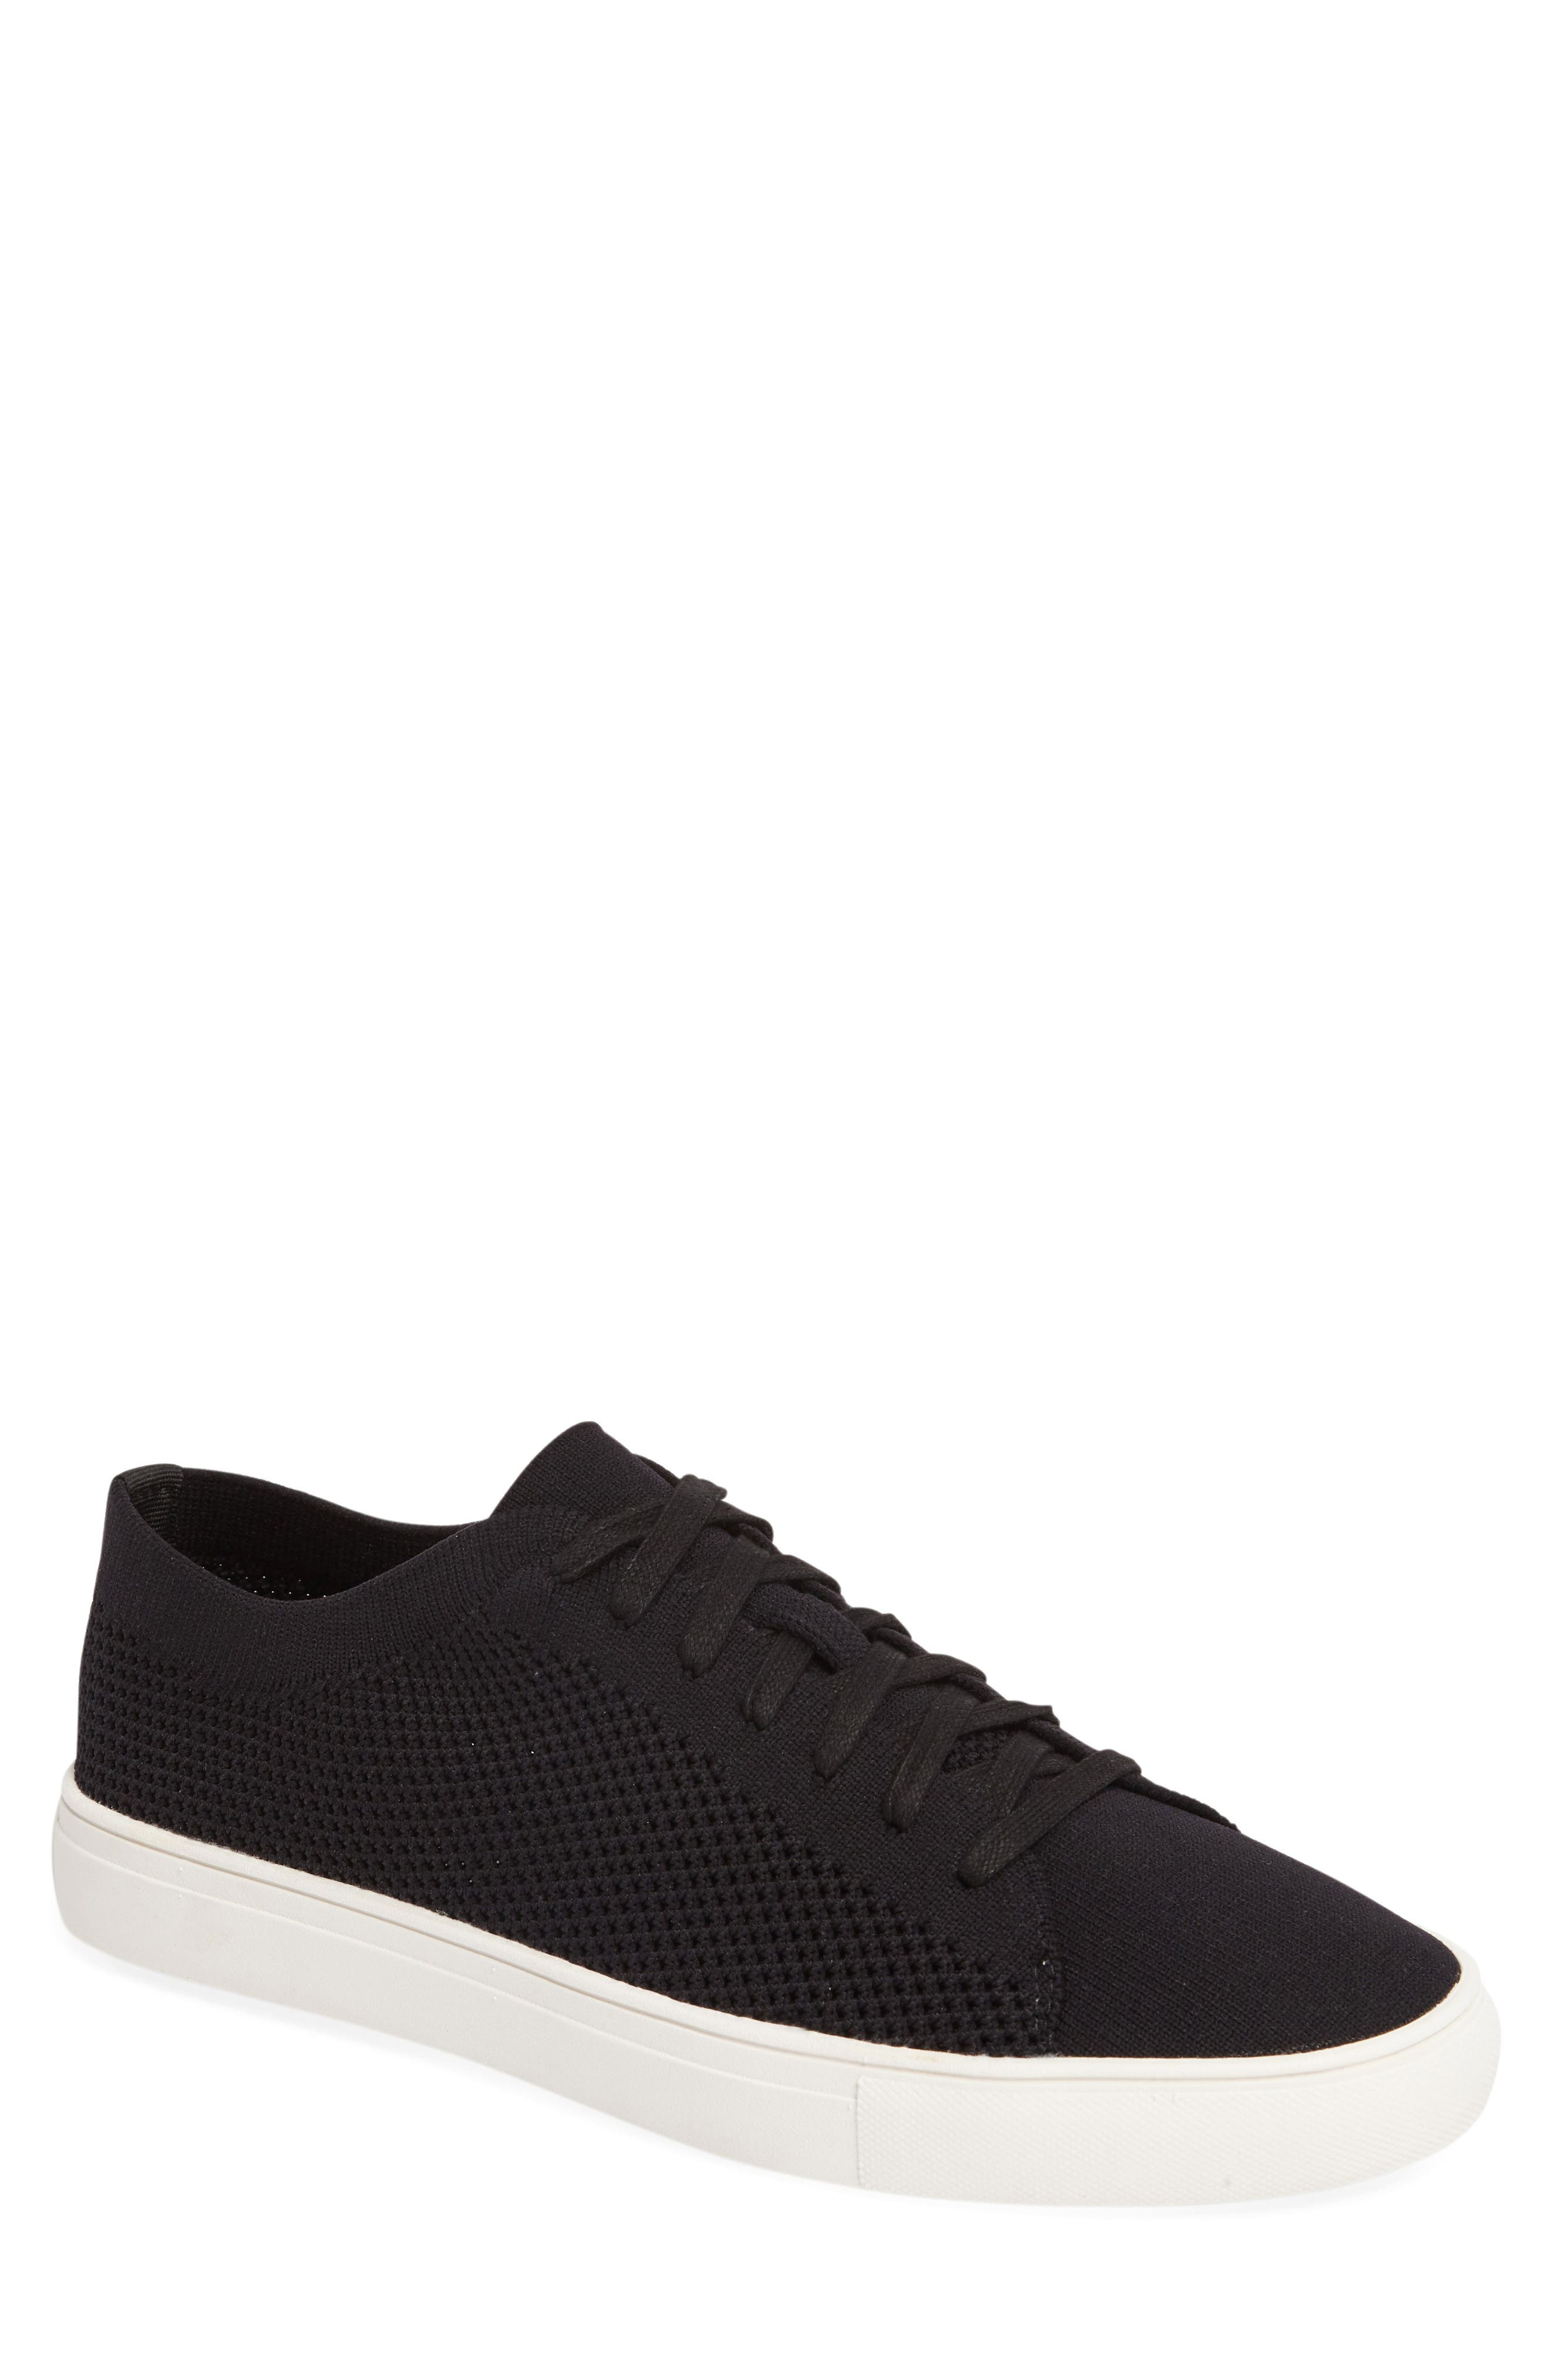 Alternate Image 1 Selected - Reaction Kenneth Cole On the Road Woven Sneaker (Men)